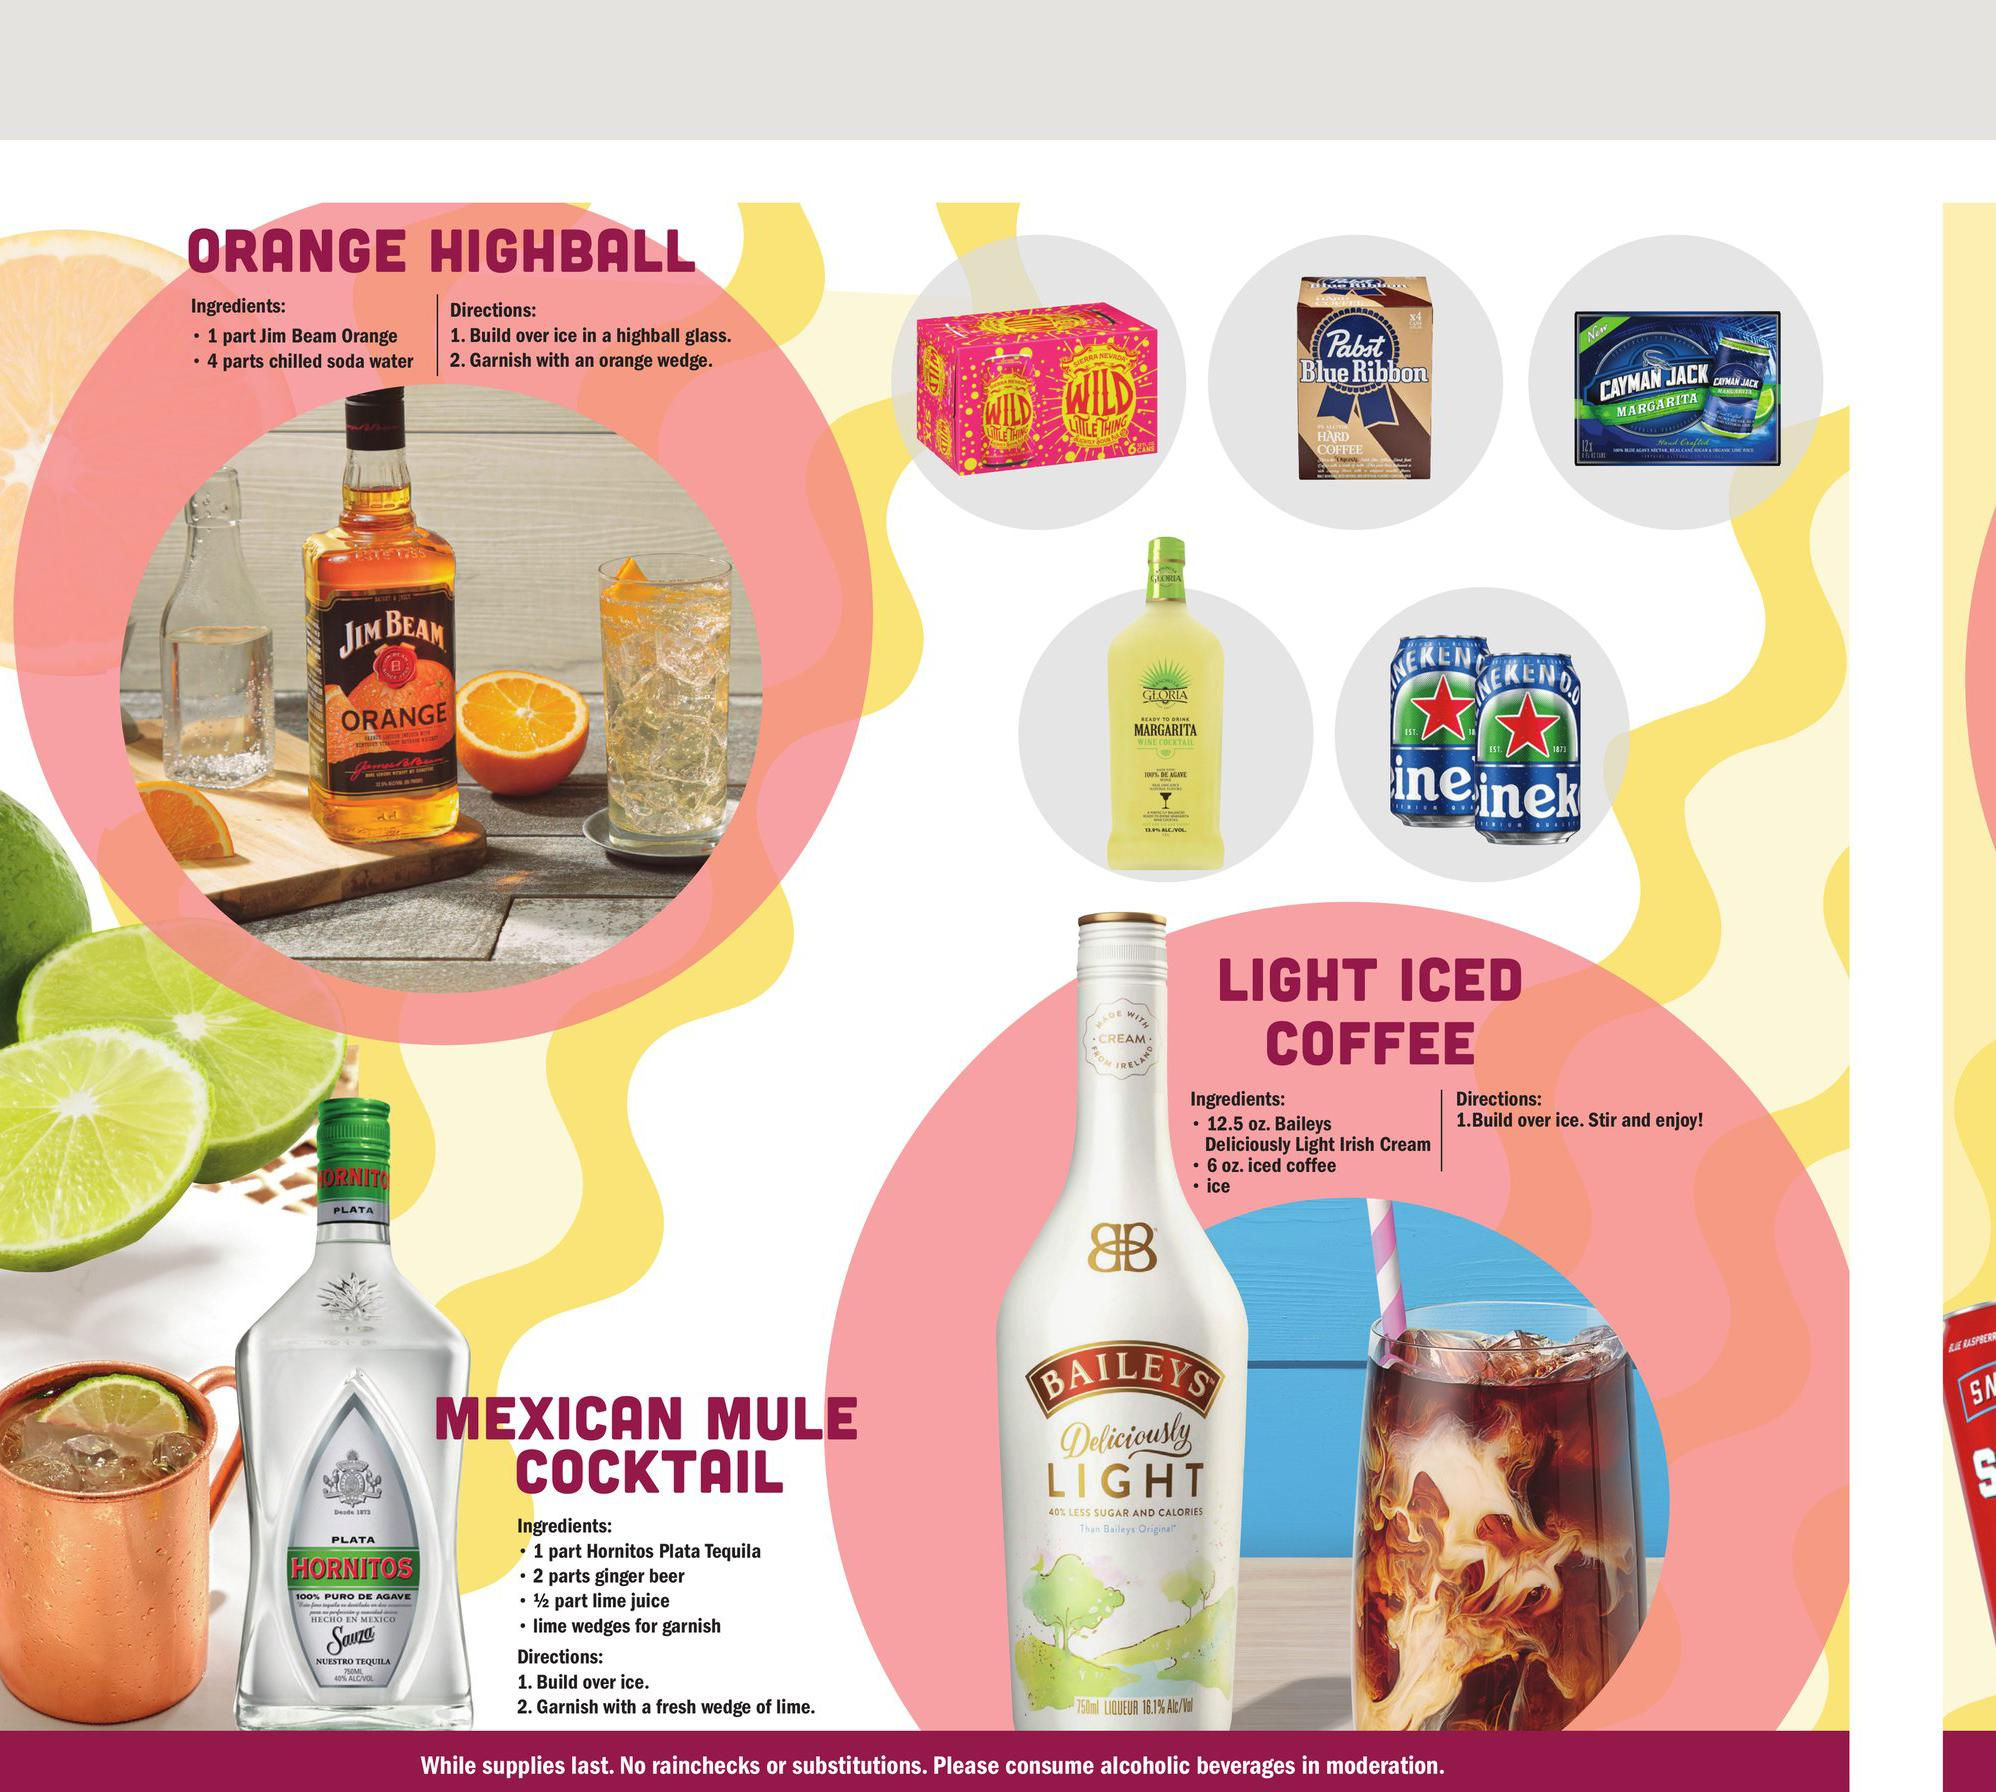 06.06.2021 Meijer ad 3. page